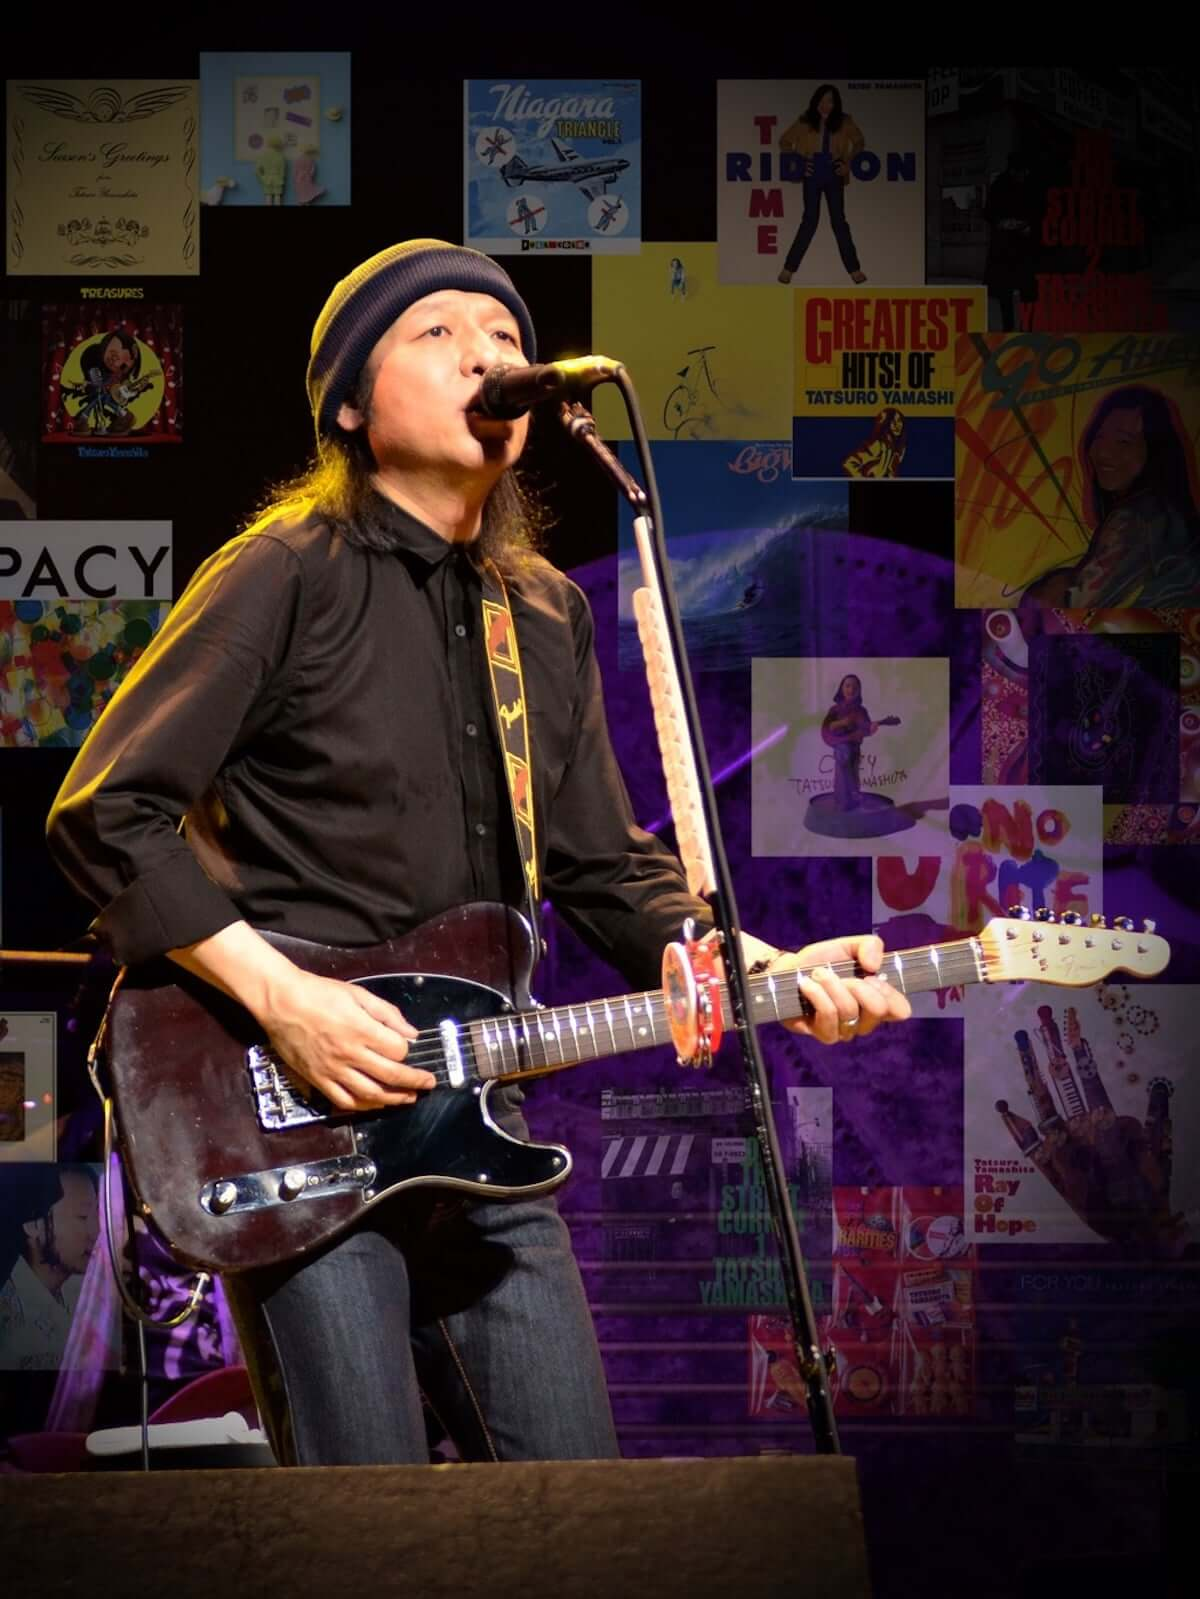 竹内まりやライブドキュメンタリー映画『souvenir the movie ~MARIYA TAKEUCHI Theater Live~』再上映決定! music190422_takeuchimariya_1-1200x1599